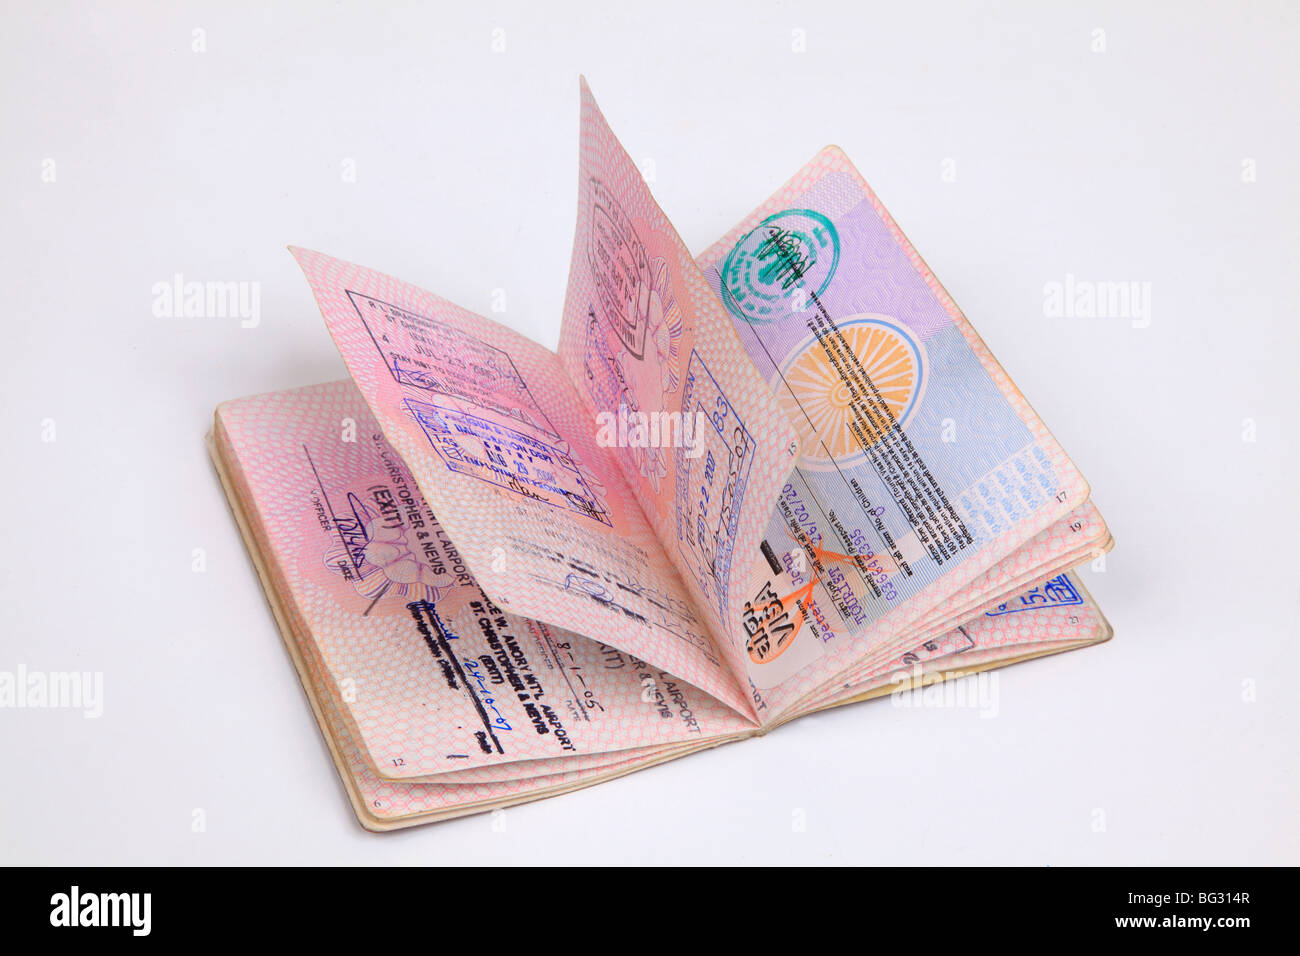 UK Passport pages with destination stamps from different countries. - Stock Image